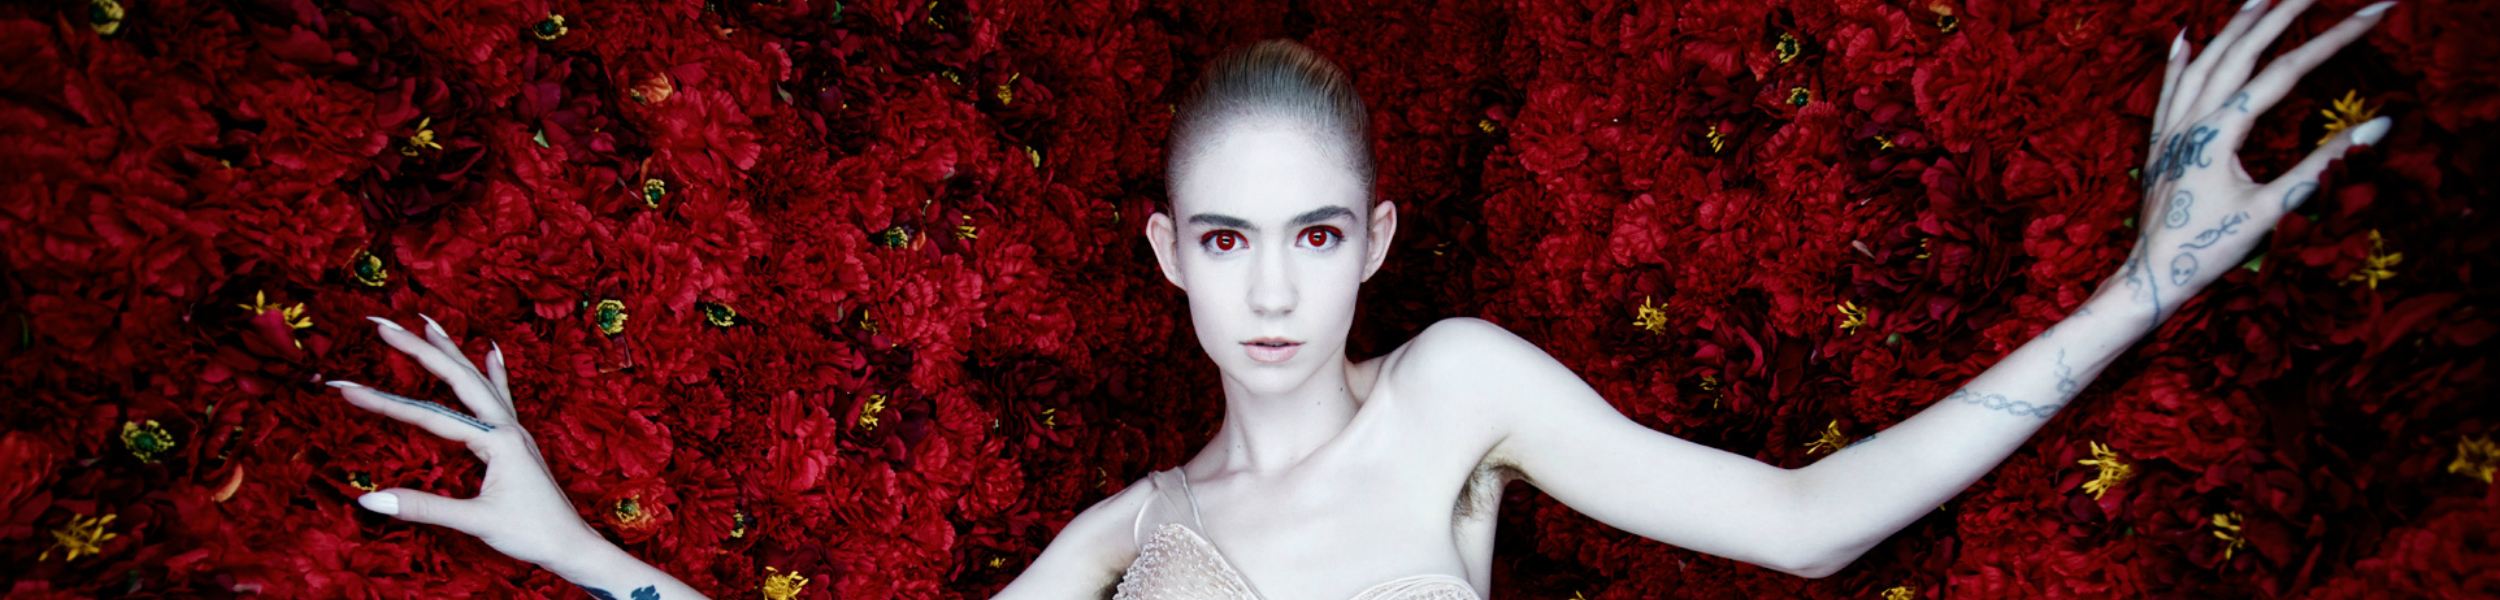 Grimes - Grimes Schedules European Tour